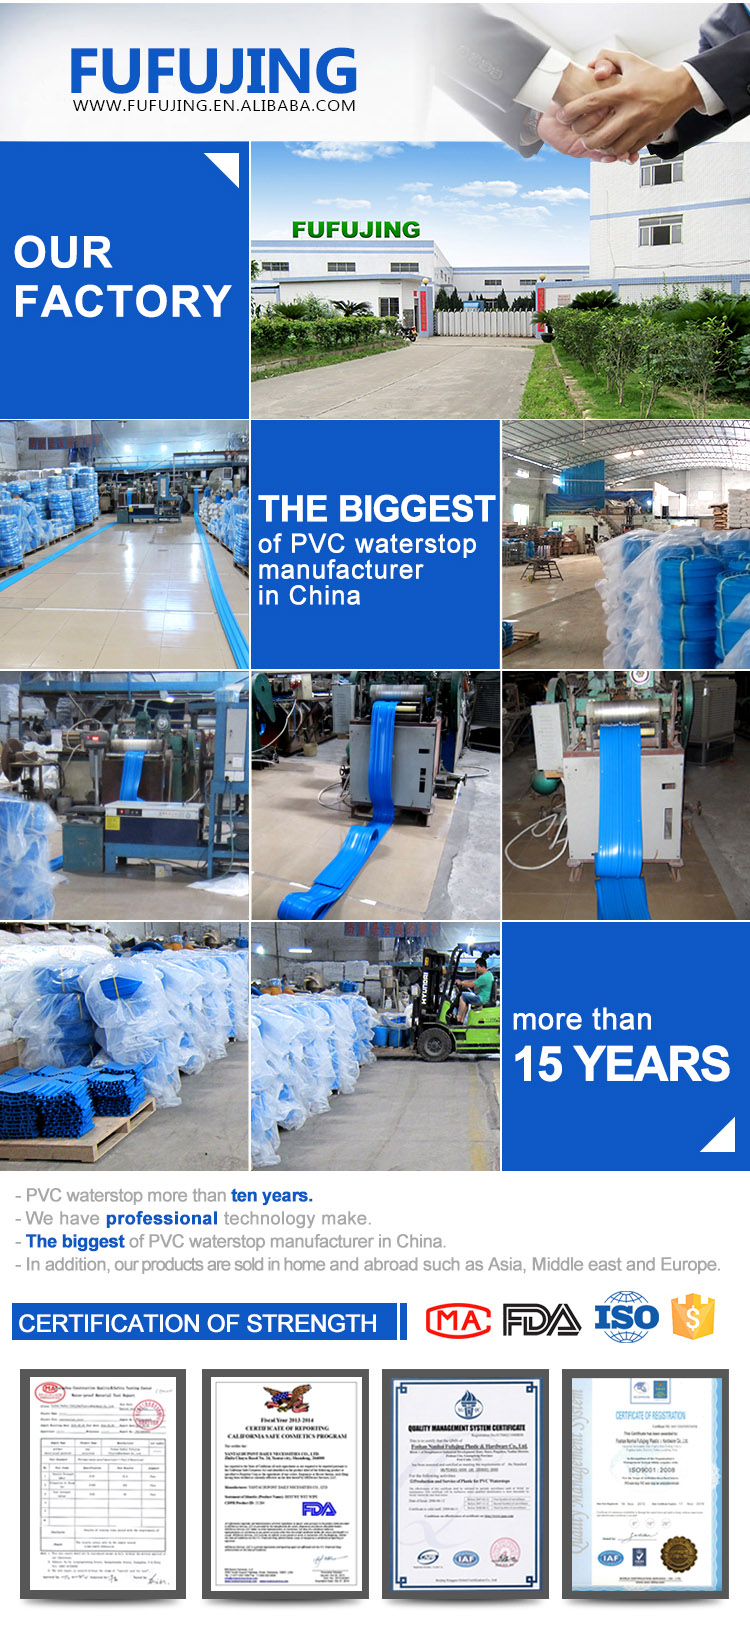 pvc water stop factory 20 years experience